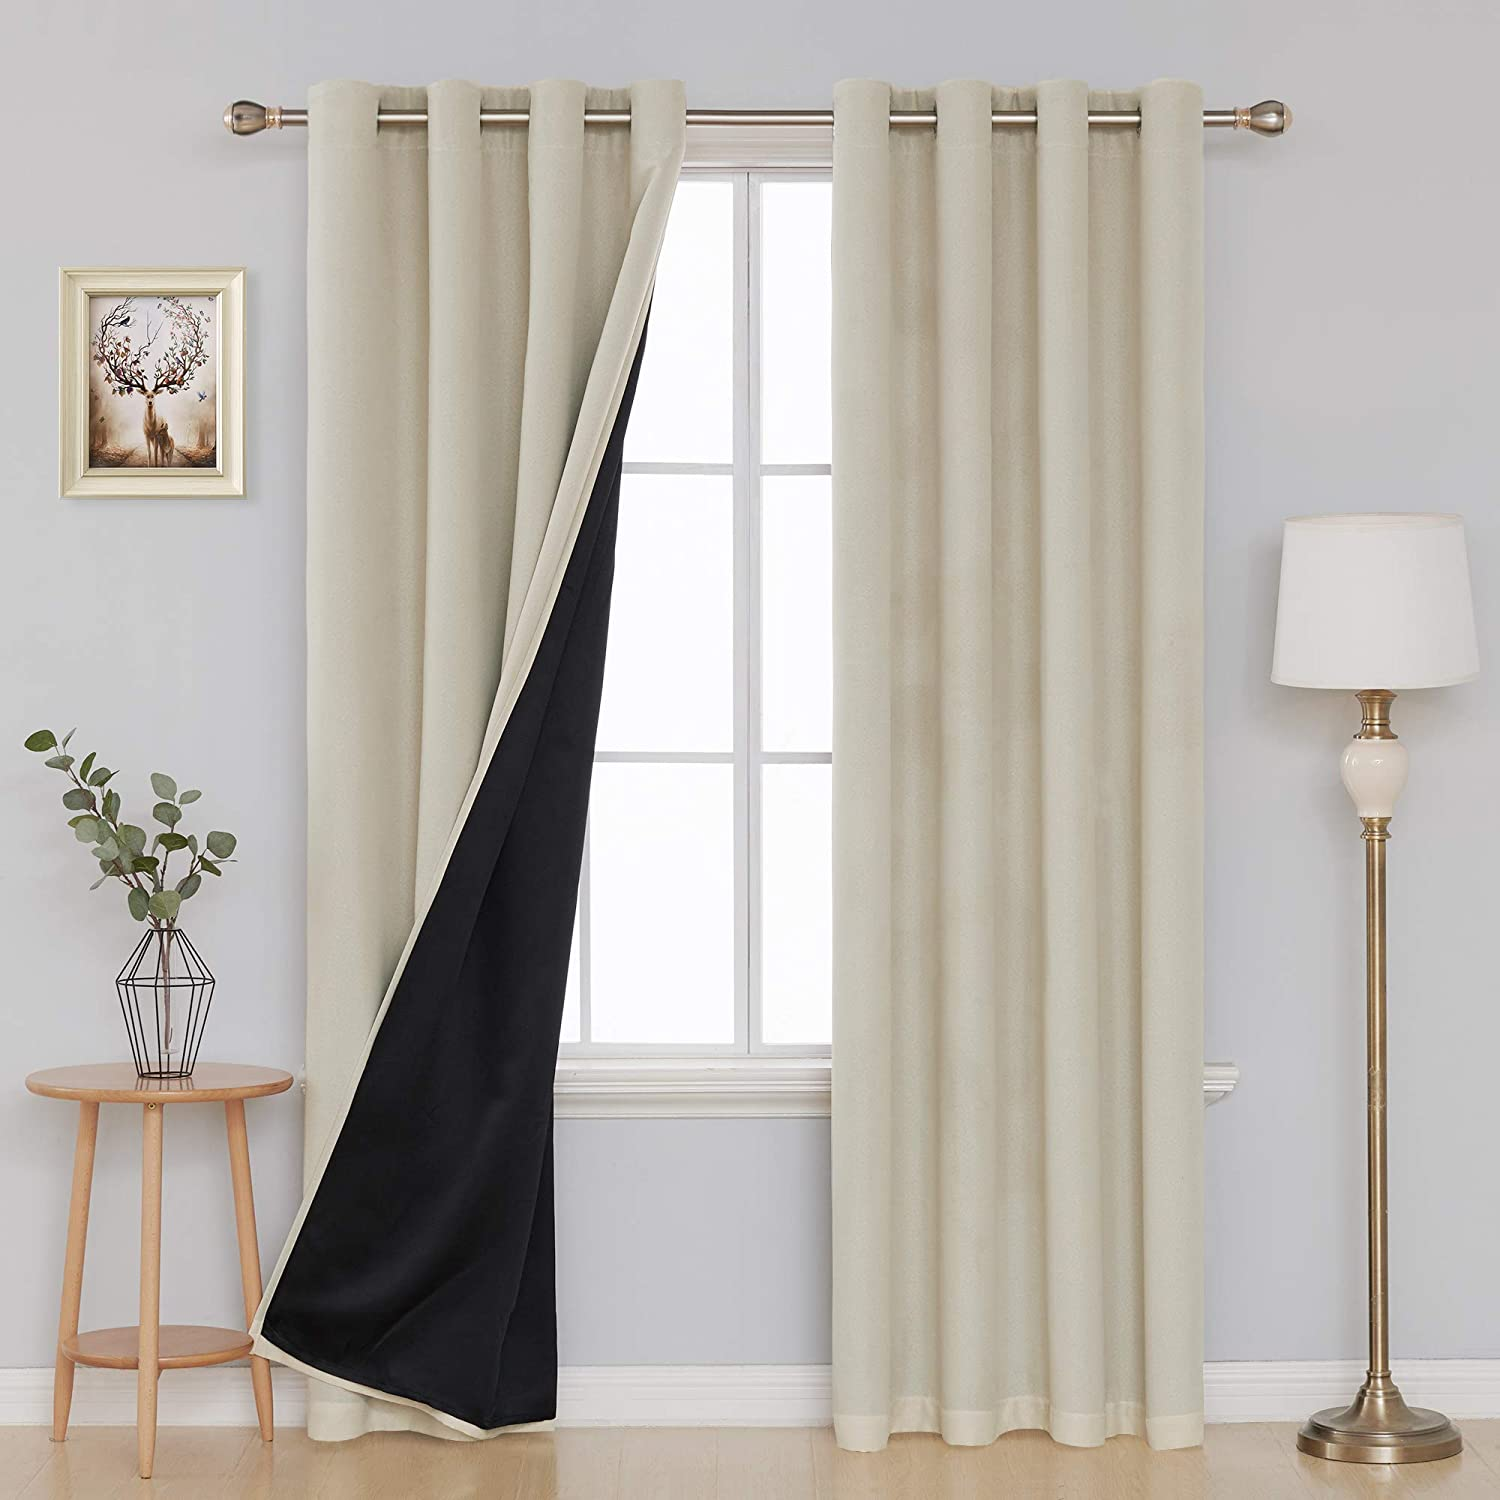 Amazon Com Deconovo Linen Blackout Curtains 100 Percent Sun Light Blocking Window Curtains For Bedroom Living Room Double Layer Room Darkening Grommet Curtains Beige 52 X 84 Inches Length Set Of 2 Panels